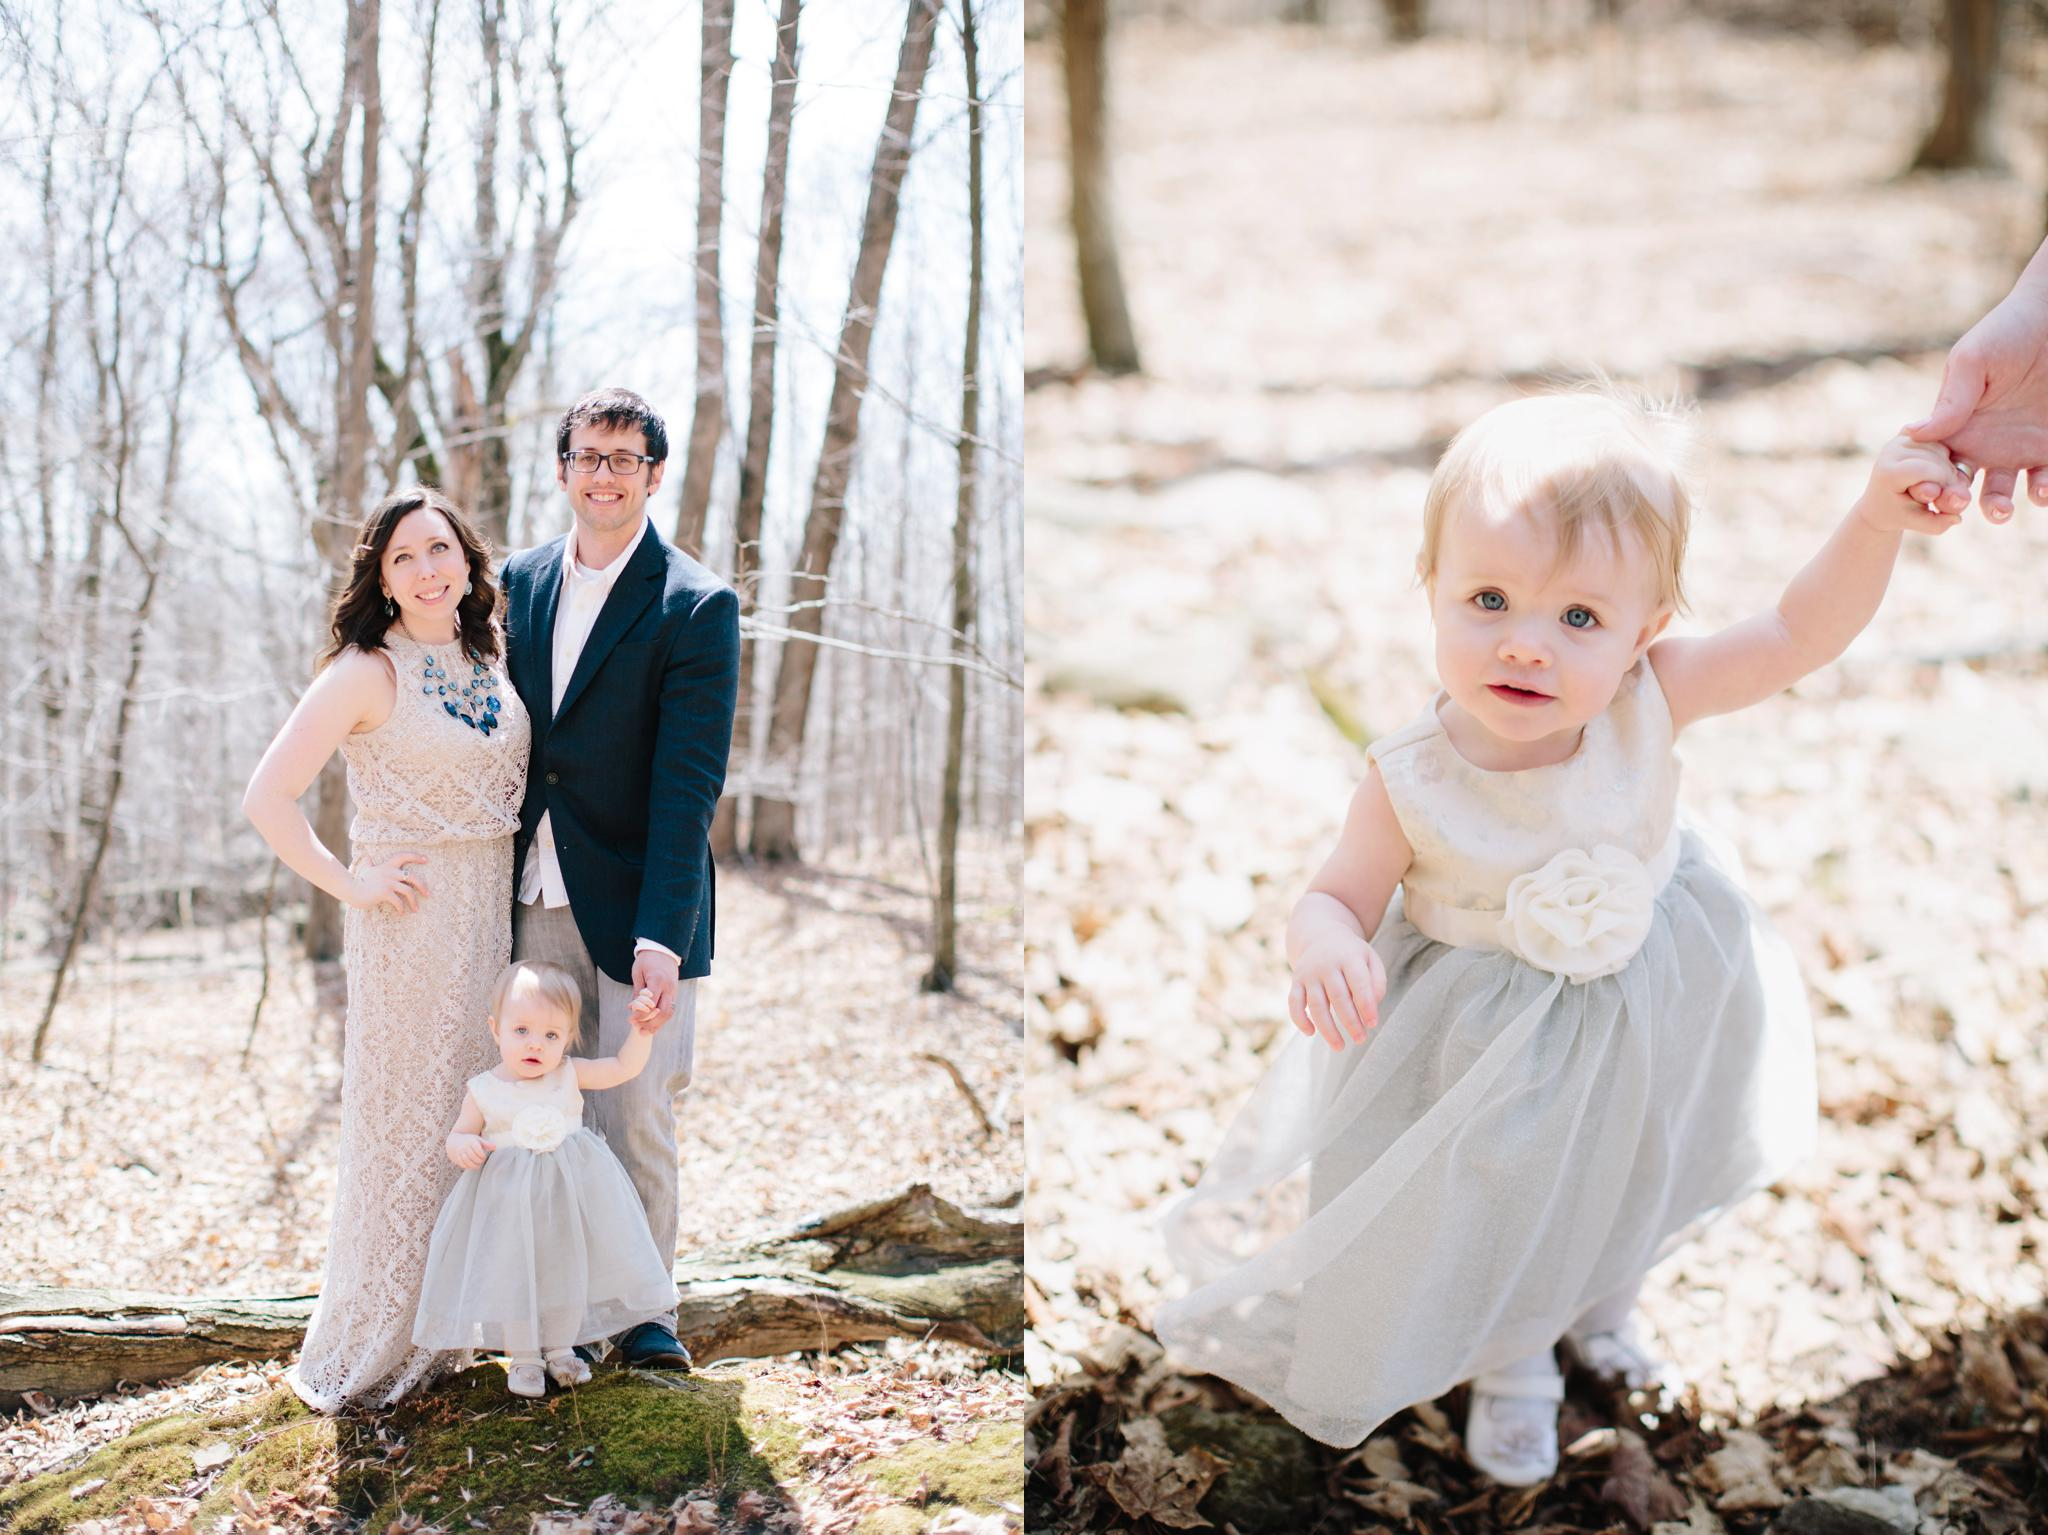 Family_Session_Tierney_Cyanne_Photography_5784.jpg